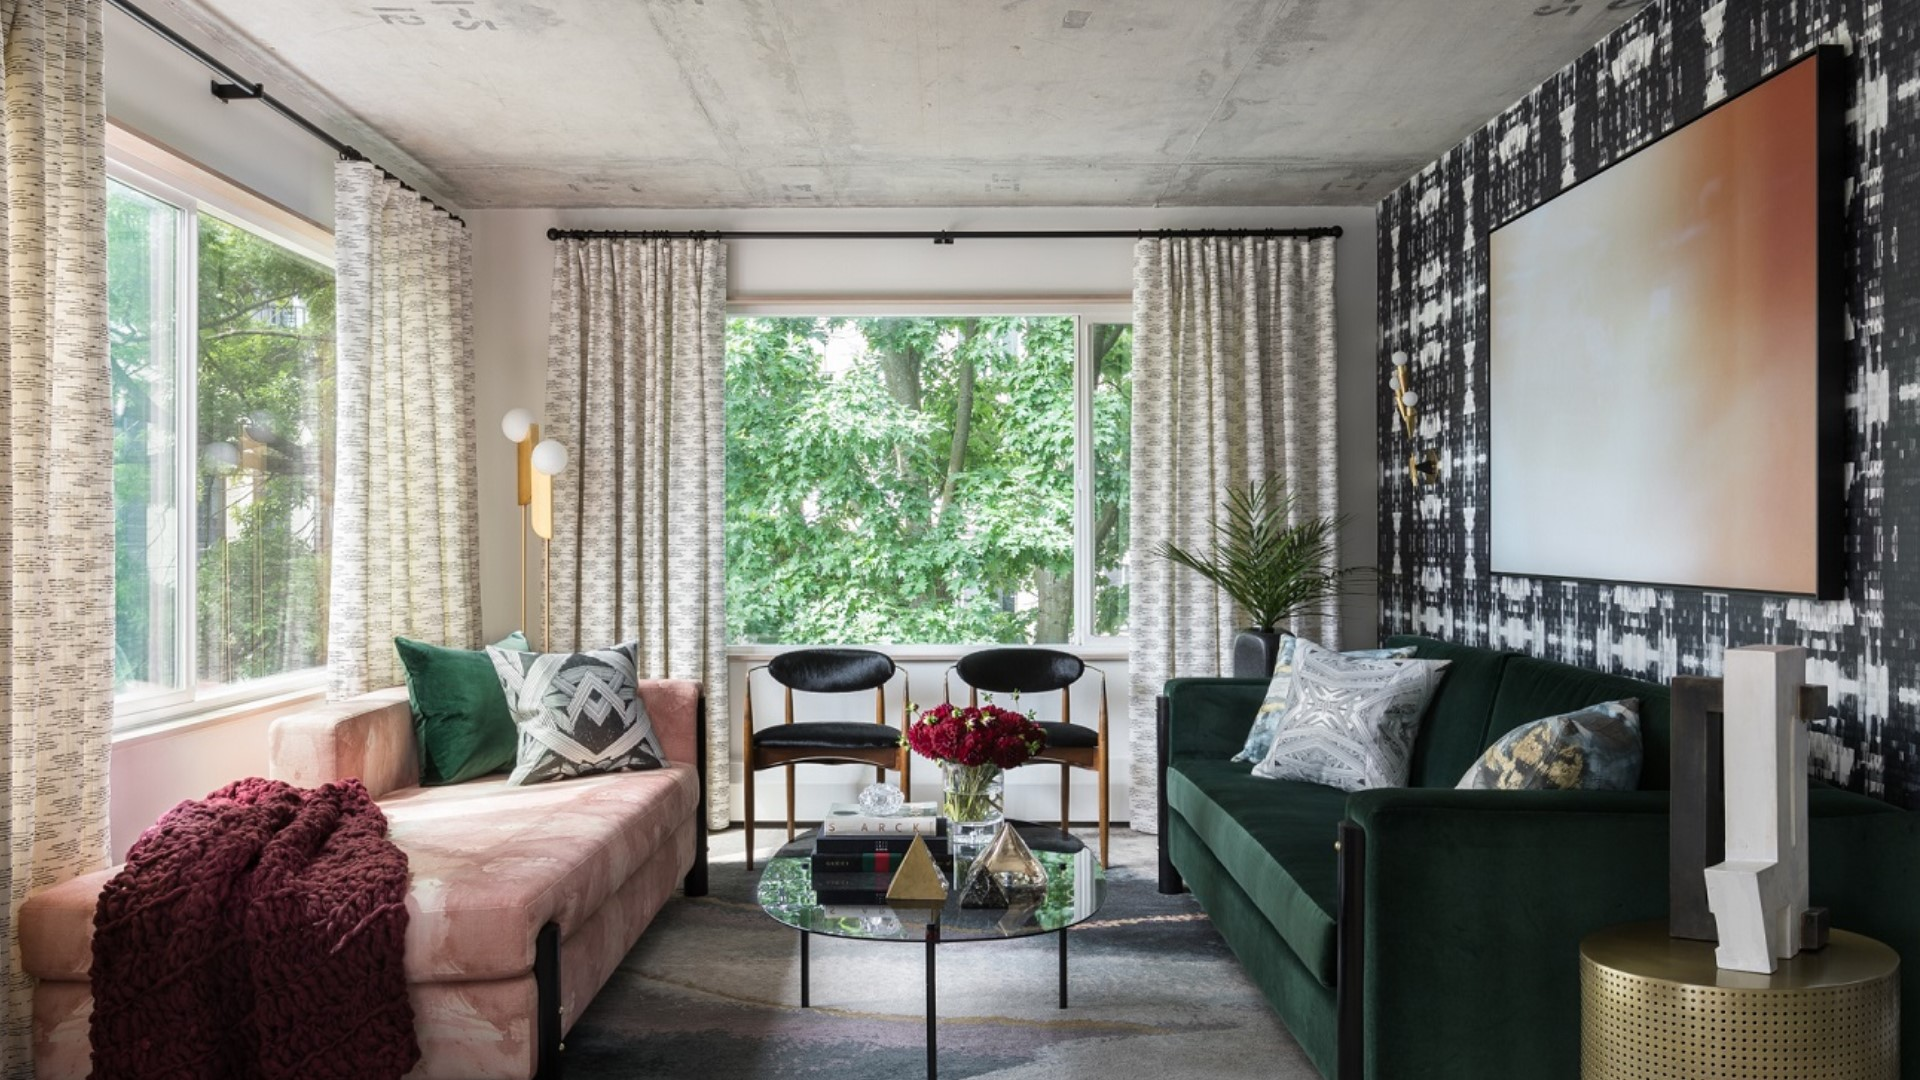 Stuck At Home Tips From An Interior Designer On How To Thoughtfully Spruce Up Your Space King5 Com